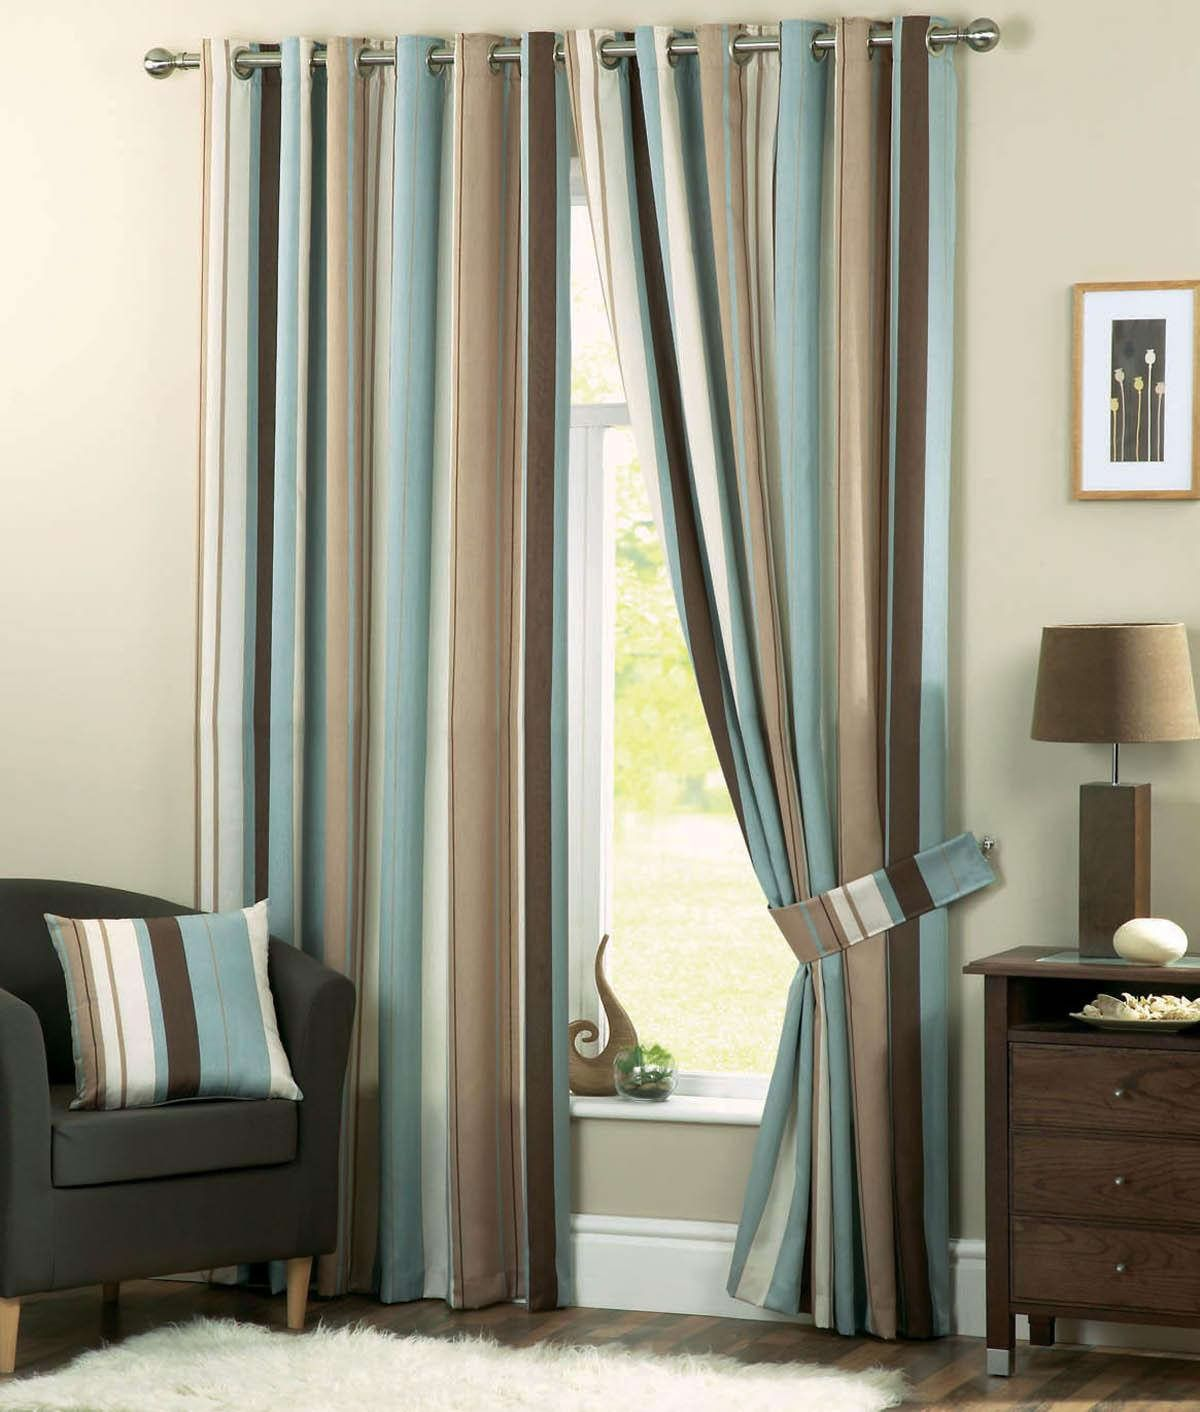 cotton white dark style decor prints blue panels wall size bedroom chair light pocket with crystal buttermilk large mosaic teal in aqua finial pink verlette country curtains gray rod of window curtain sheer refacing flower old royal sheers engaging allen living long roth interior art and shop polyester